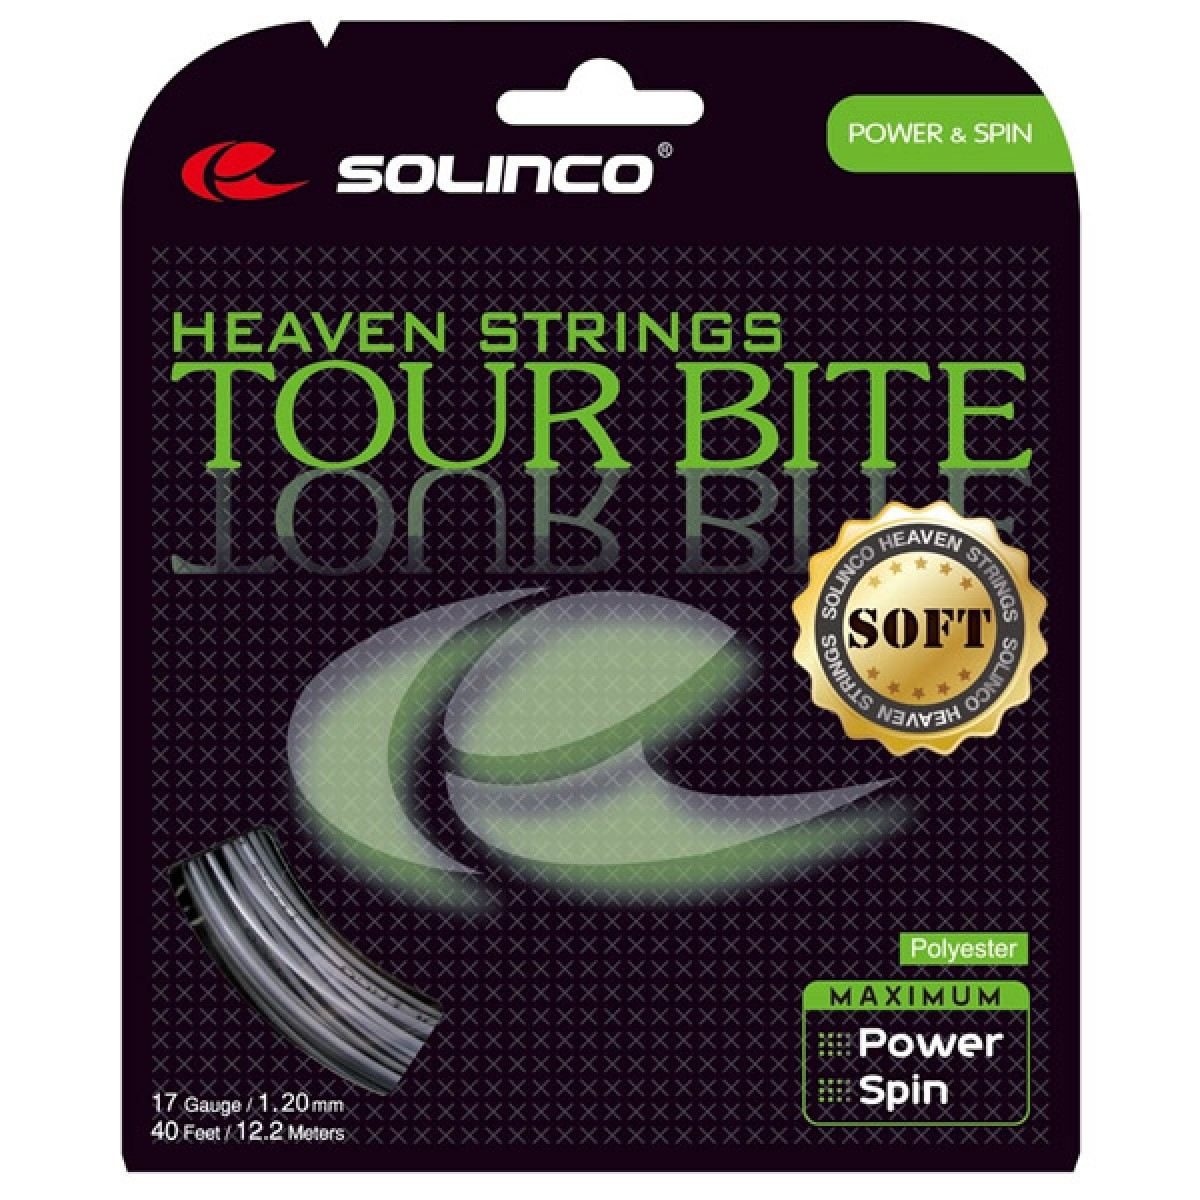 CORDAGE SOLINCO TOUR BITE SOFT (12 METRES)